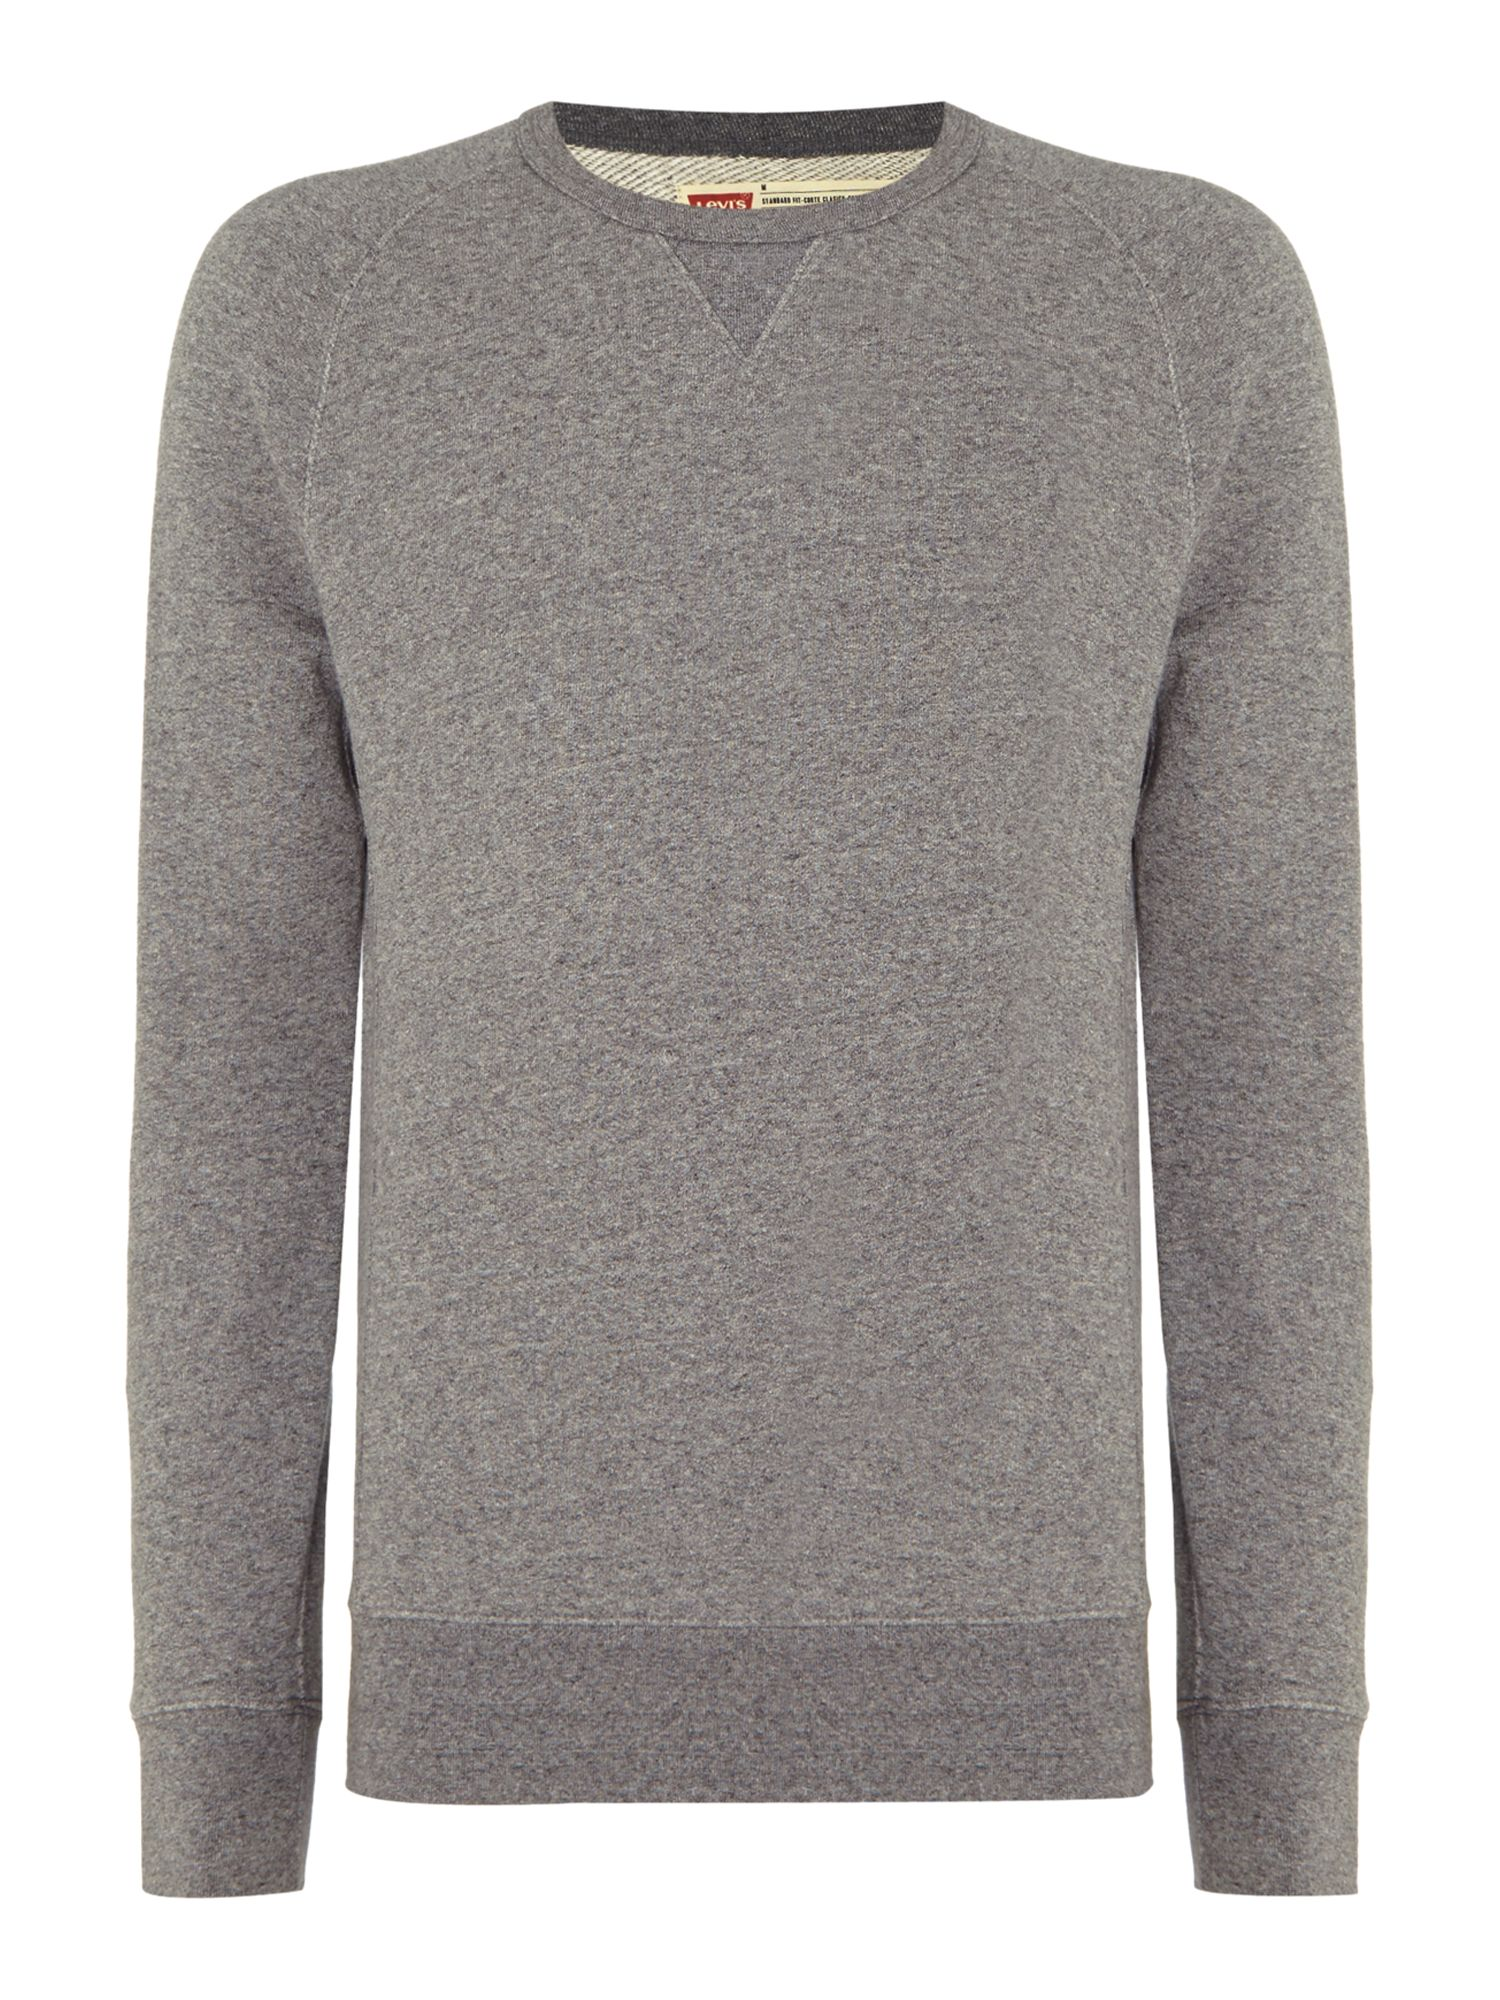 Men's Levi's Crew neck sweatshirt, Grey